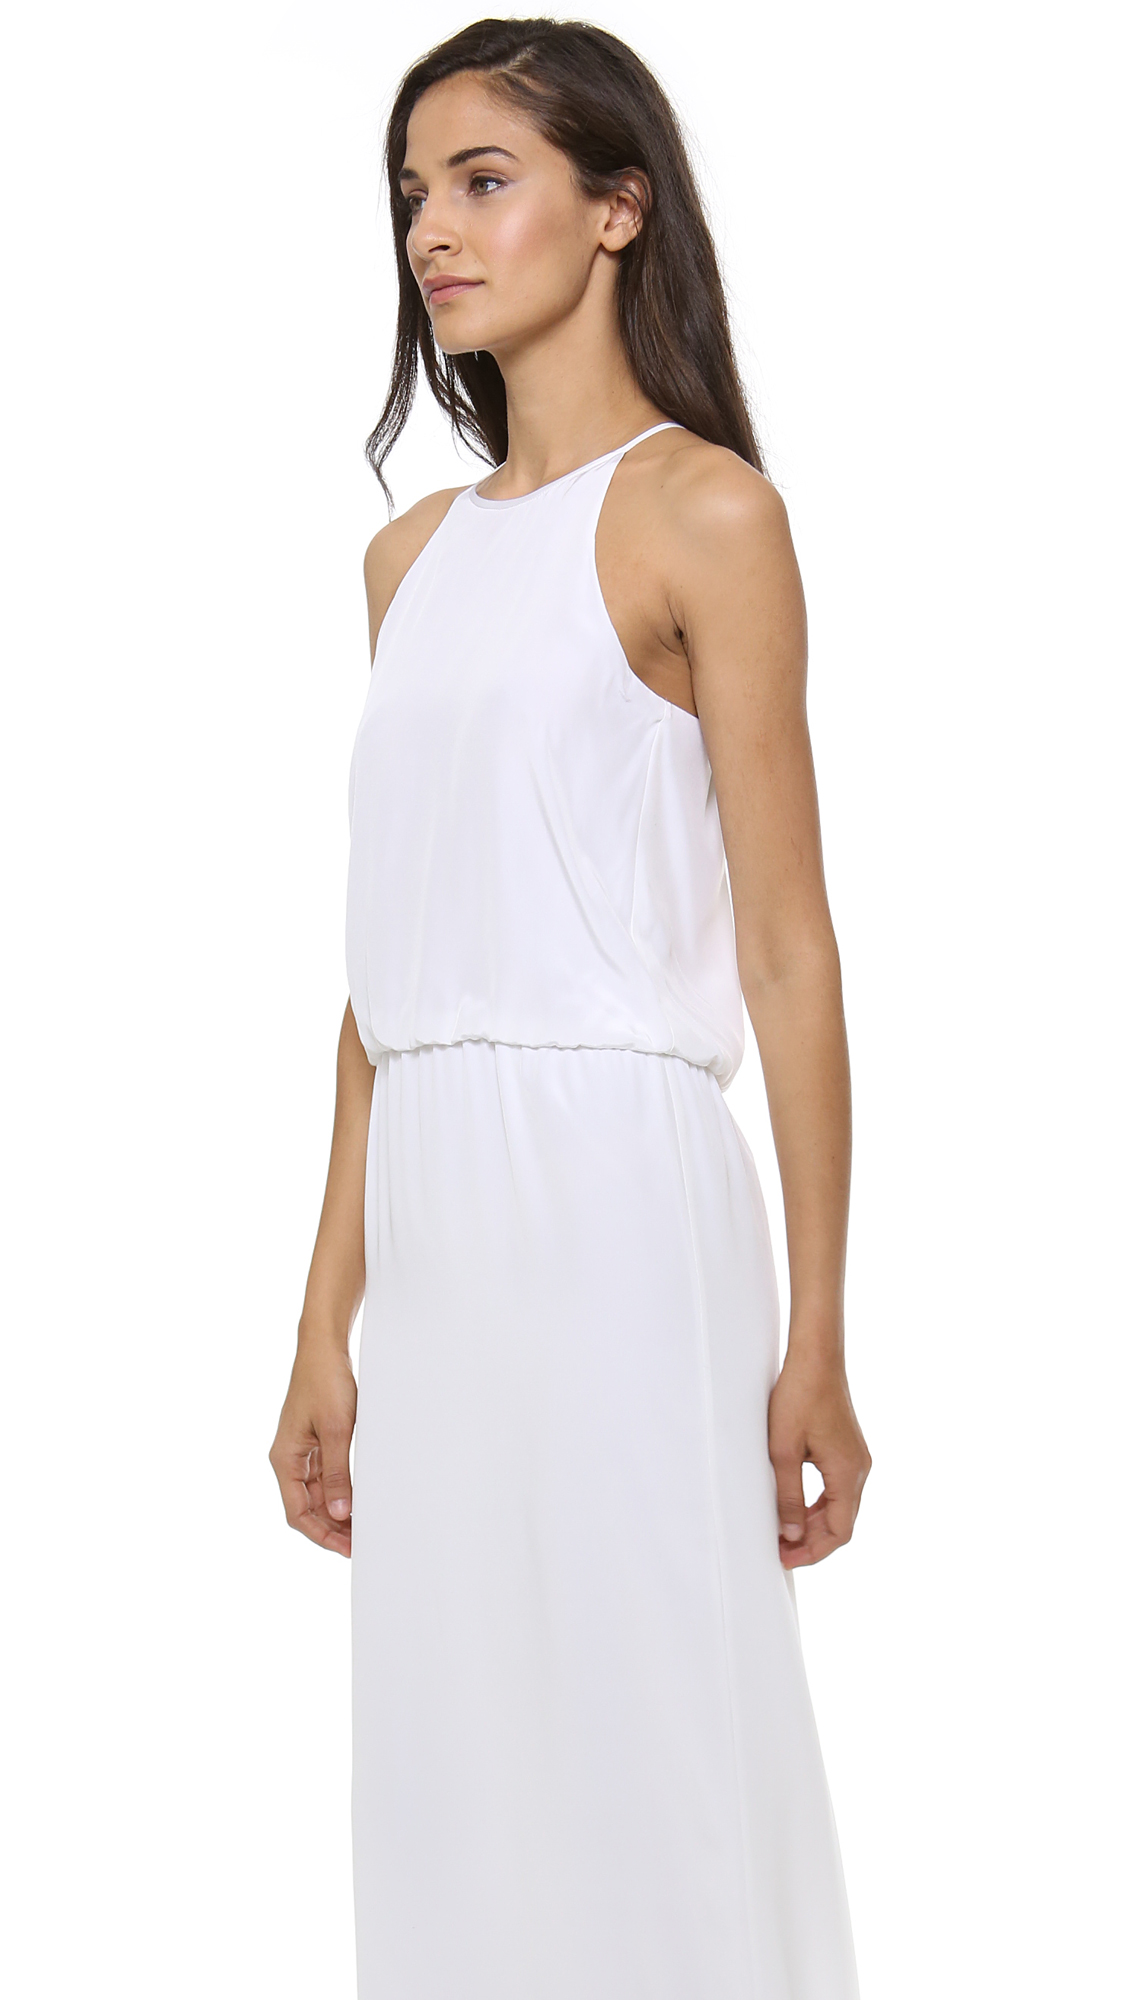 Tibi Long Halter Dress - Ivory in White | Lyst